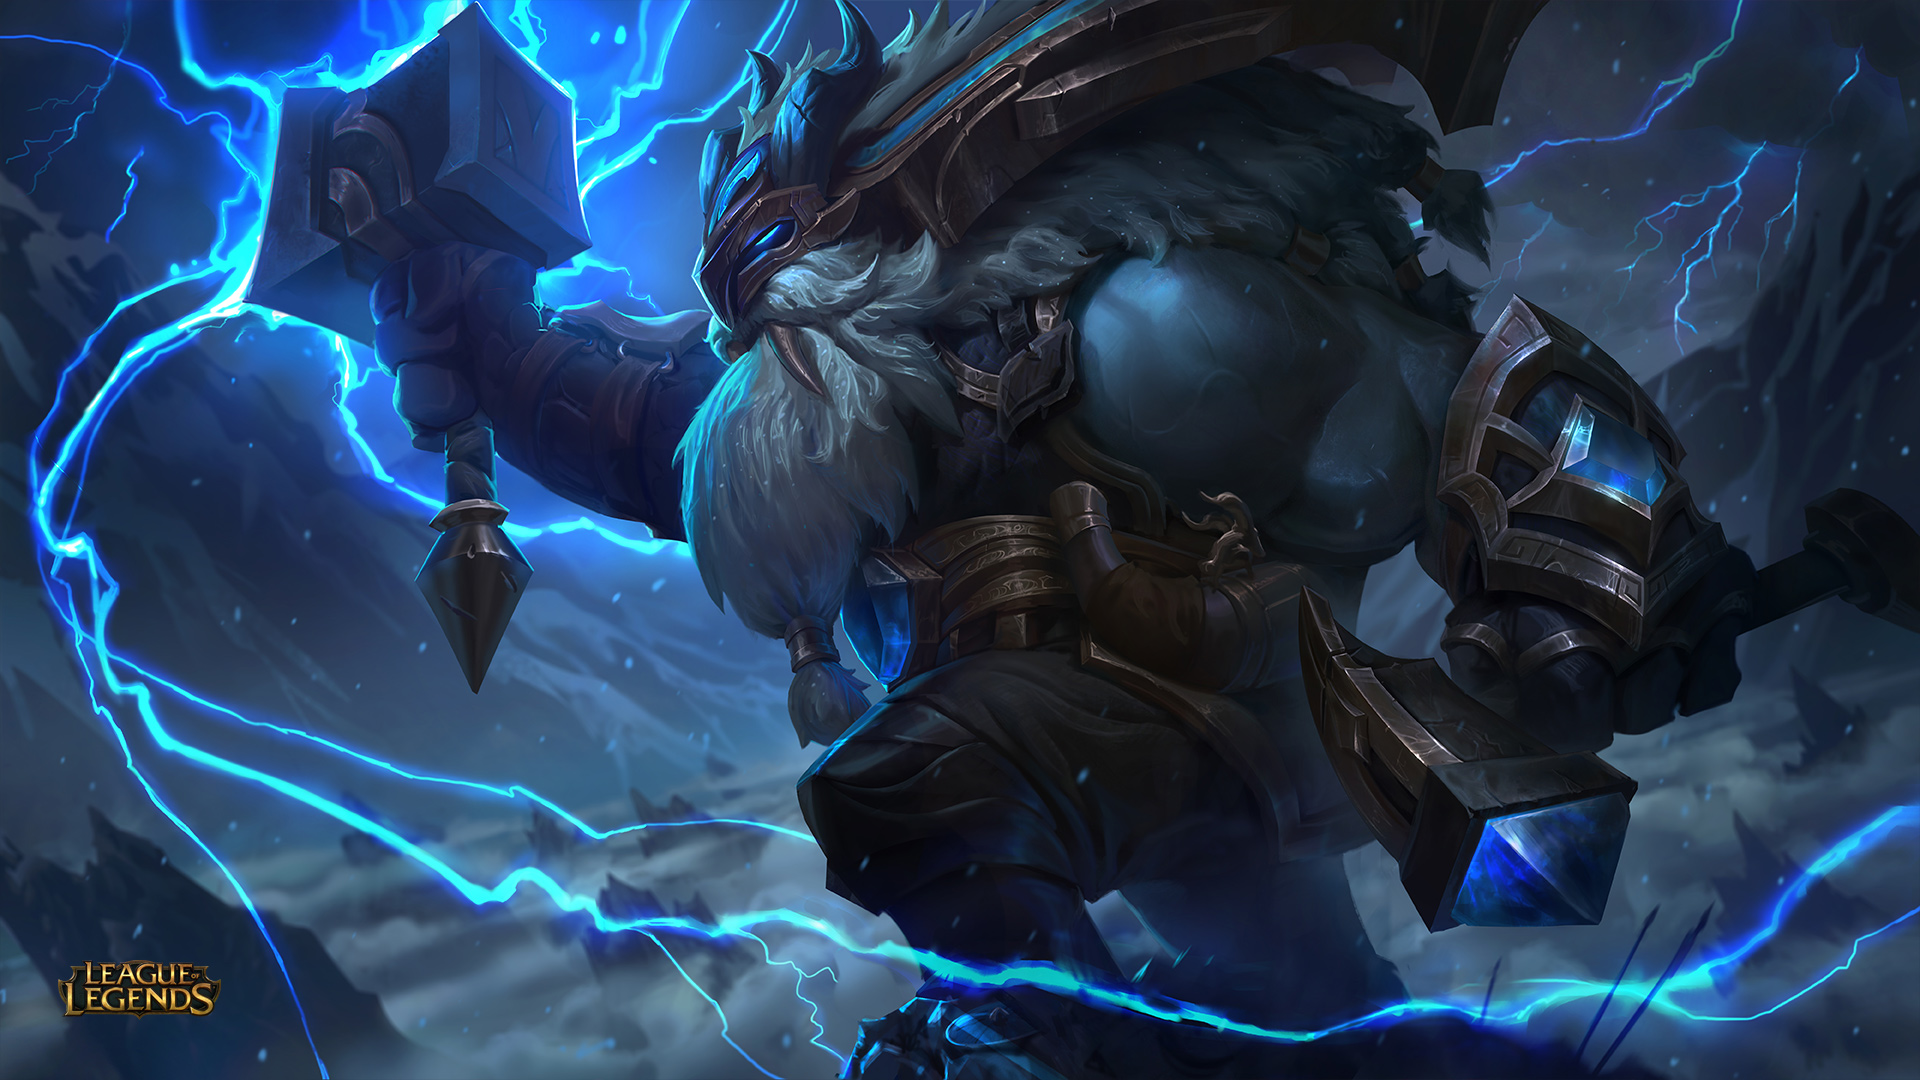 Ornn Release Skin Thunder Lord Is Blue Shiny And Walrus Like The Rift Herald